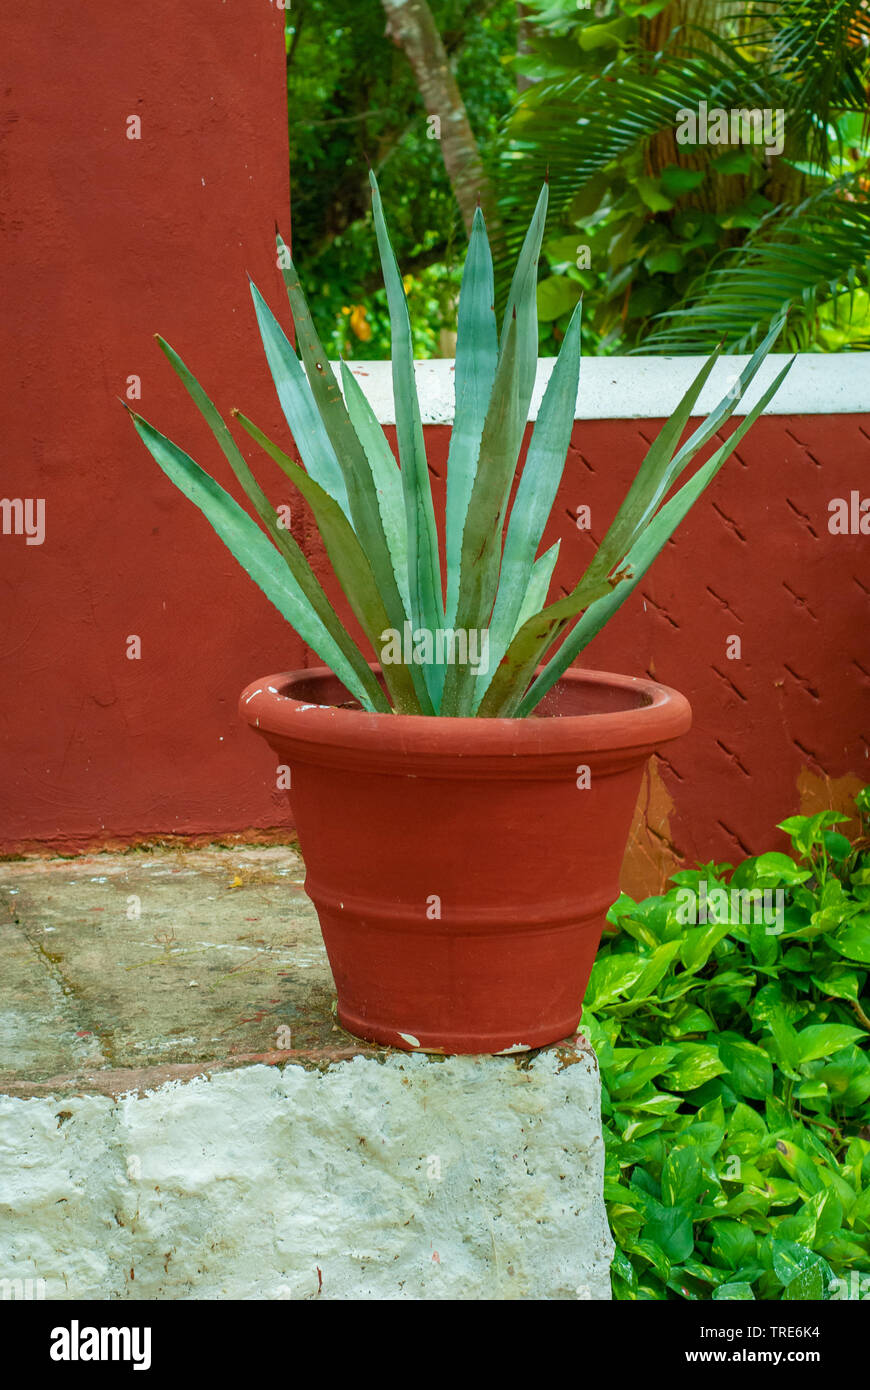 Agave plant in pot, very common in Mexico, taken from Tecoh, in the Yucatan peninsula - Stock Image